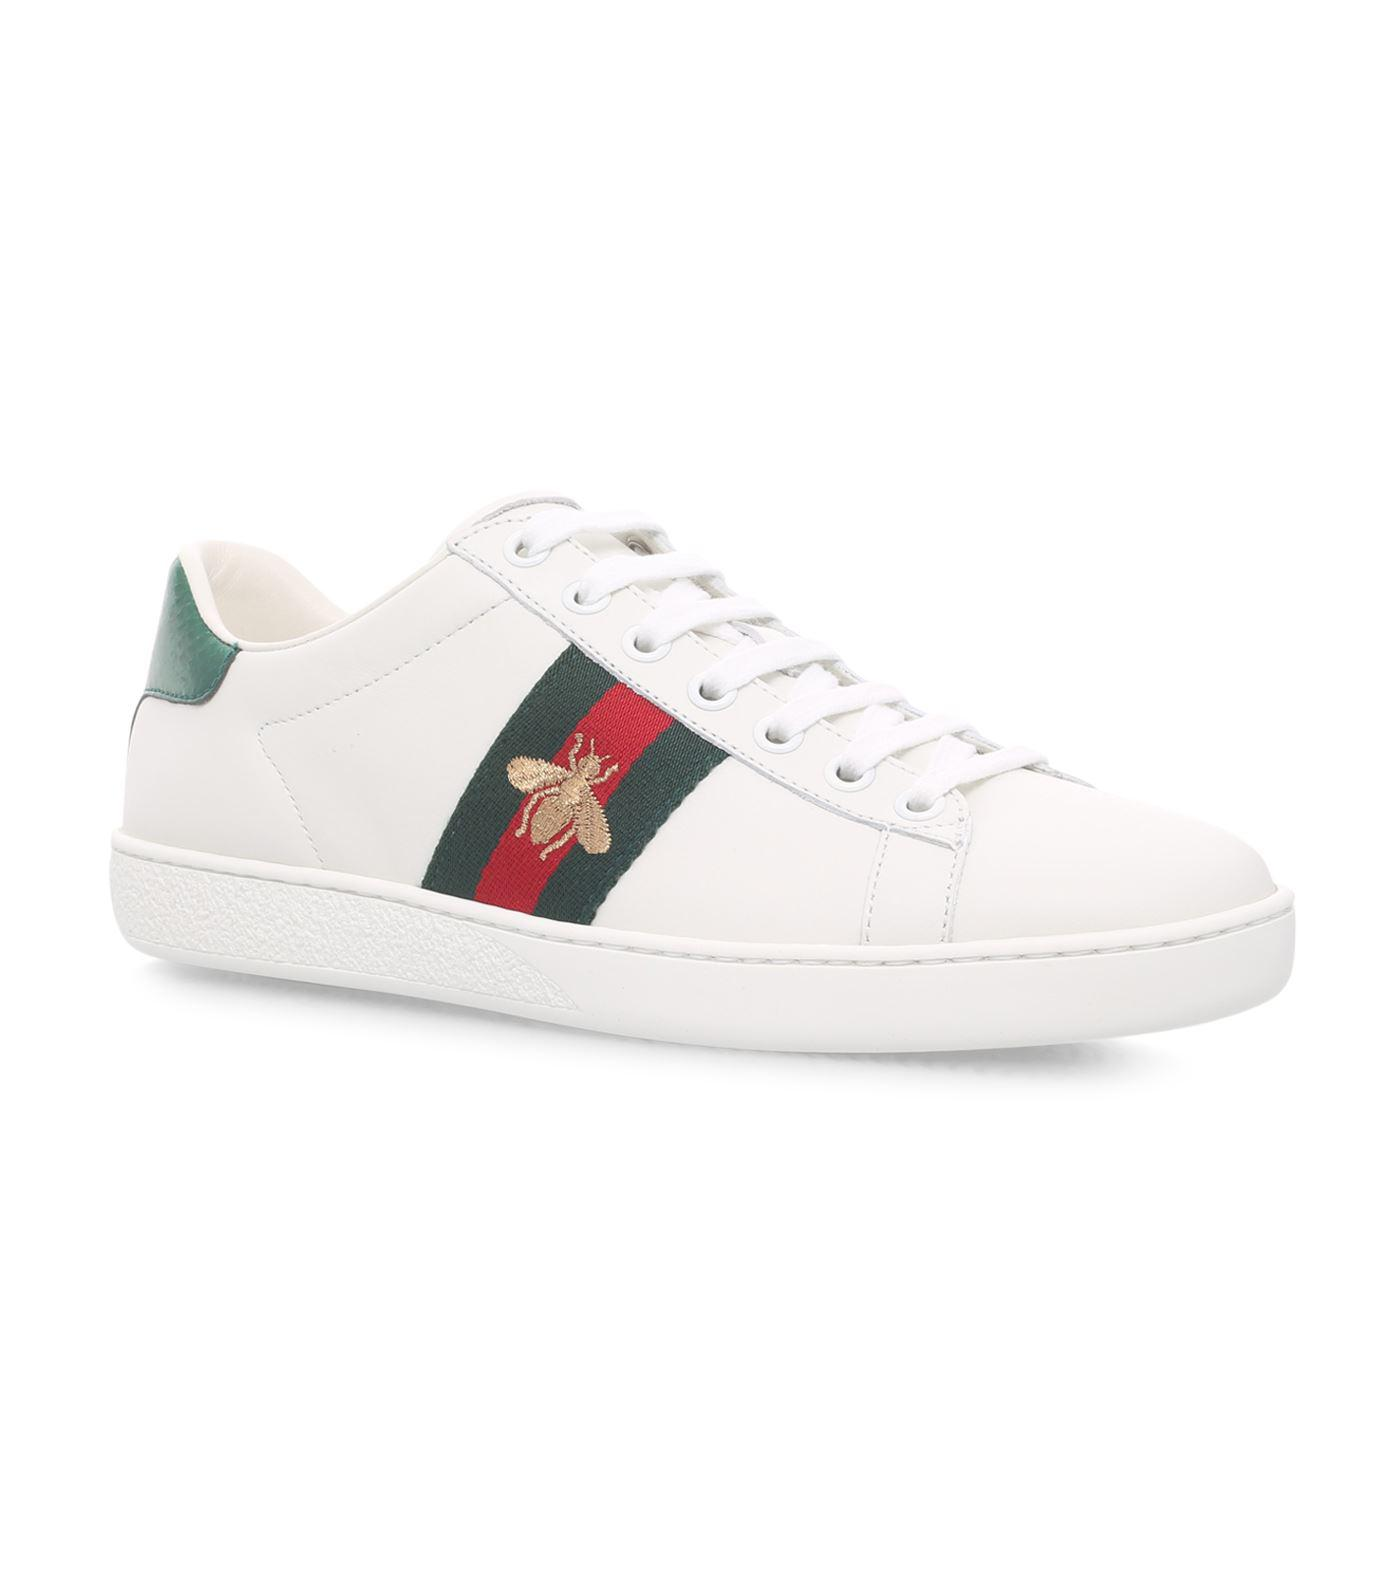 GucciBee New Ace Folded Sneakers 4OSh3